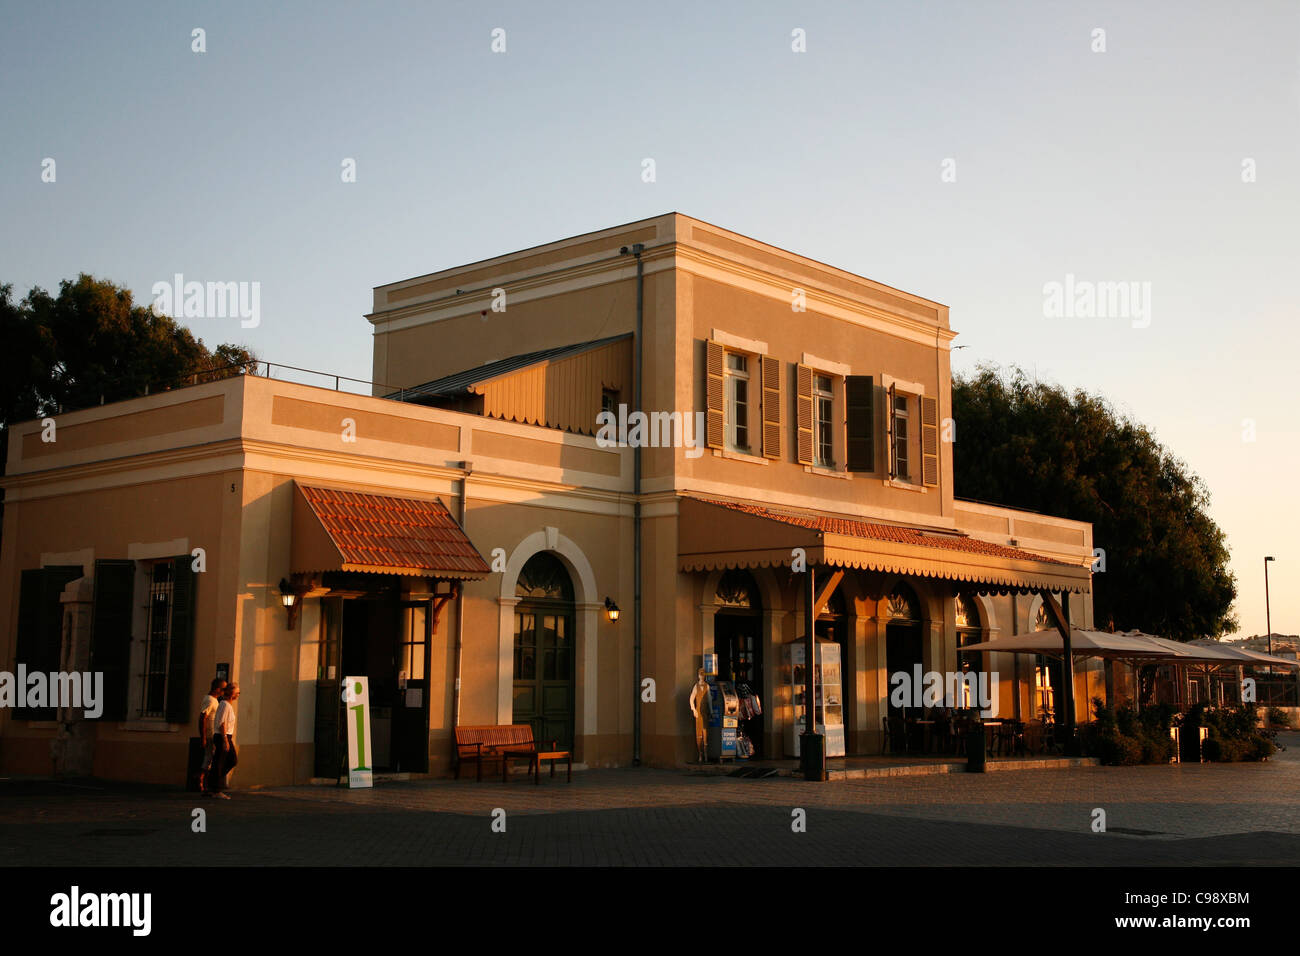 Hatachana marketplace, a former Ottoman train station in Neve Tzedek, now popular place with shops and restaurants, - Stock Image